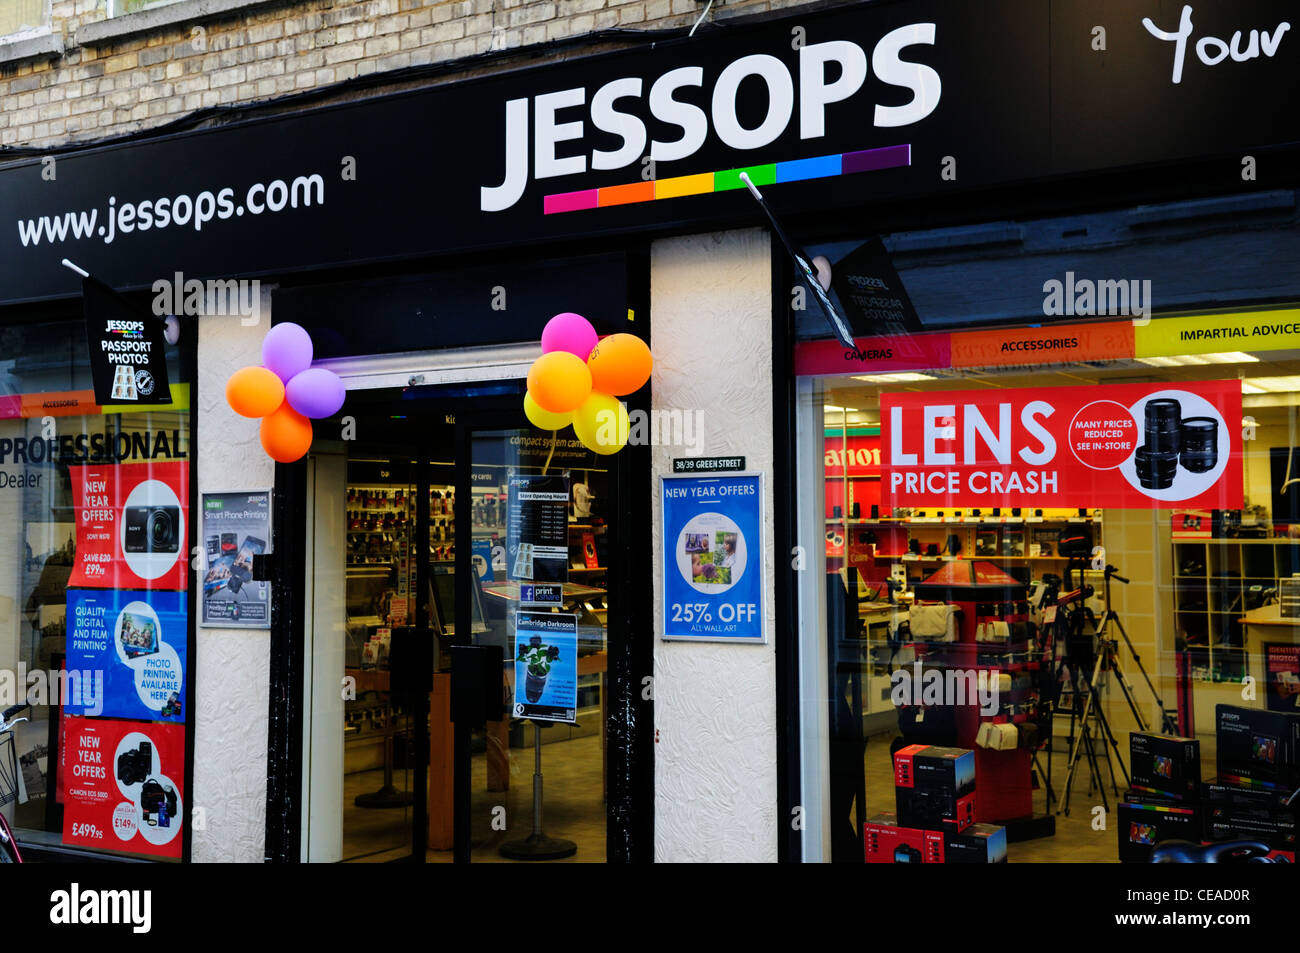 Jessops Camera Shop, Cambridge, England, UK - Stock Image